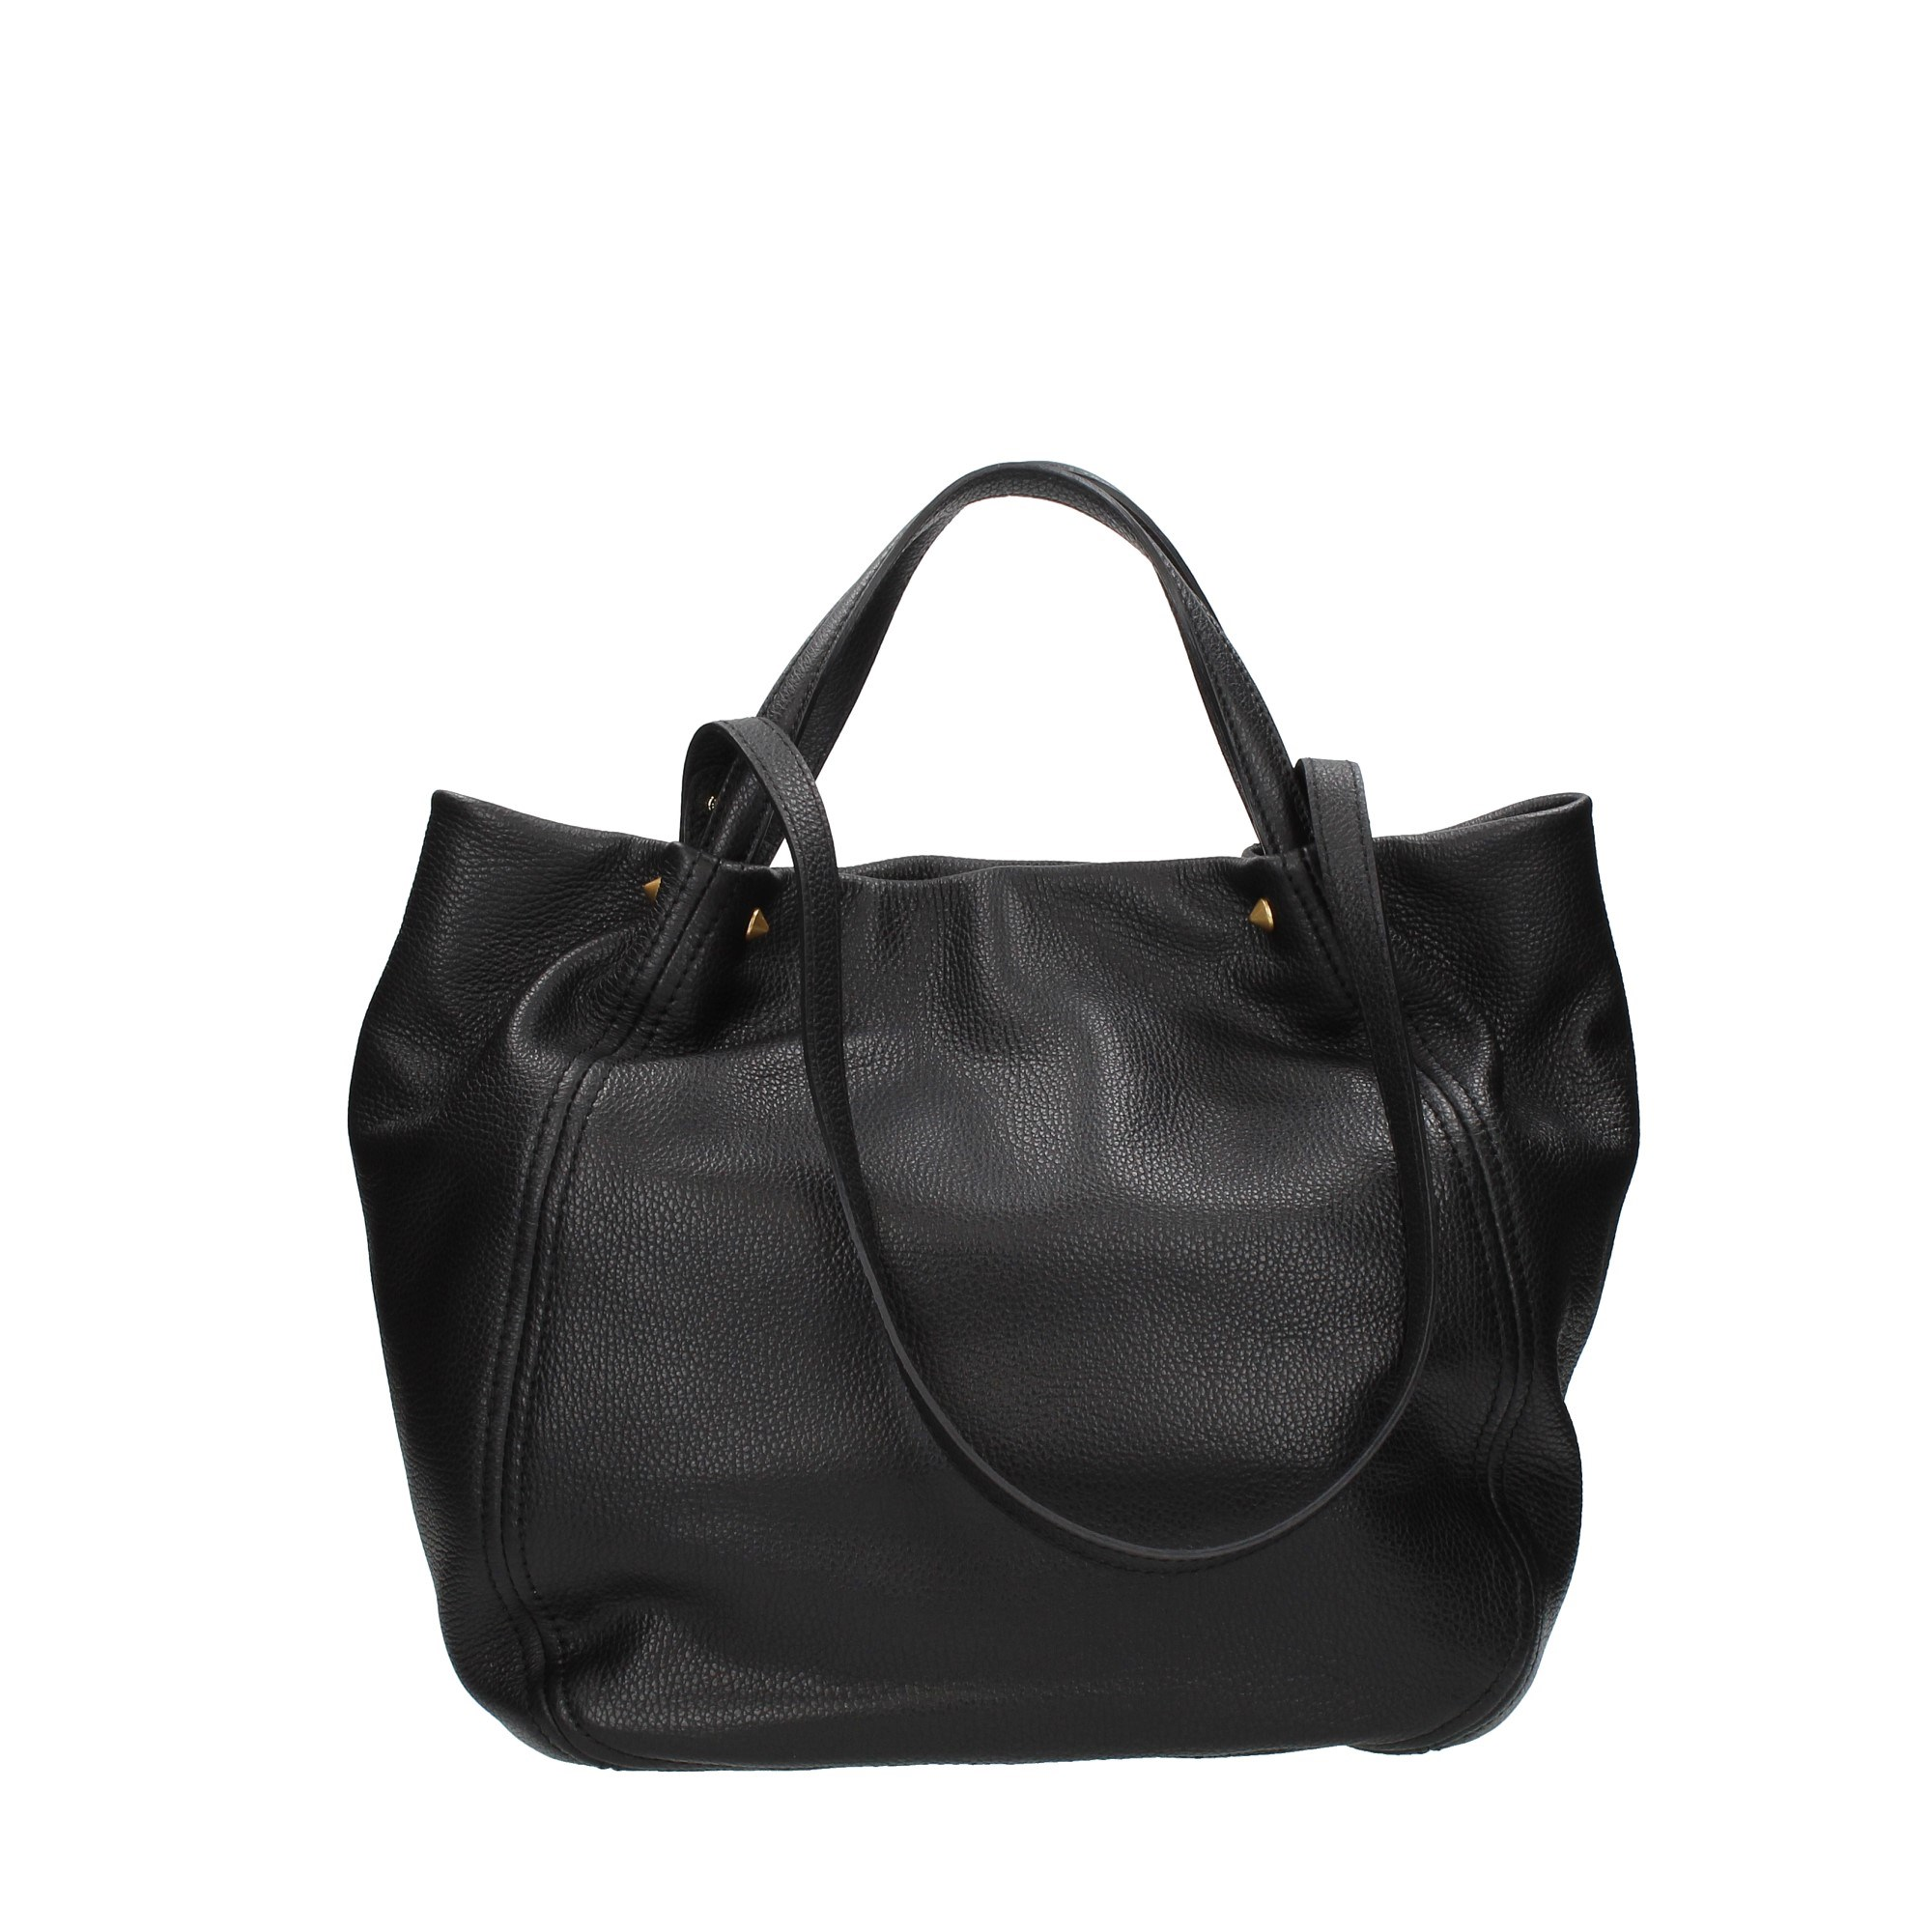 Gianni Chiarini Accessories Women Shoulder Bags Black BS8465 GRN